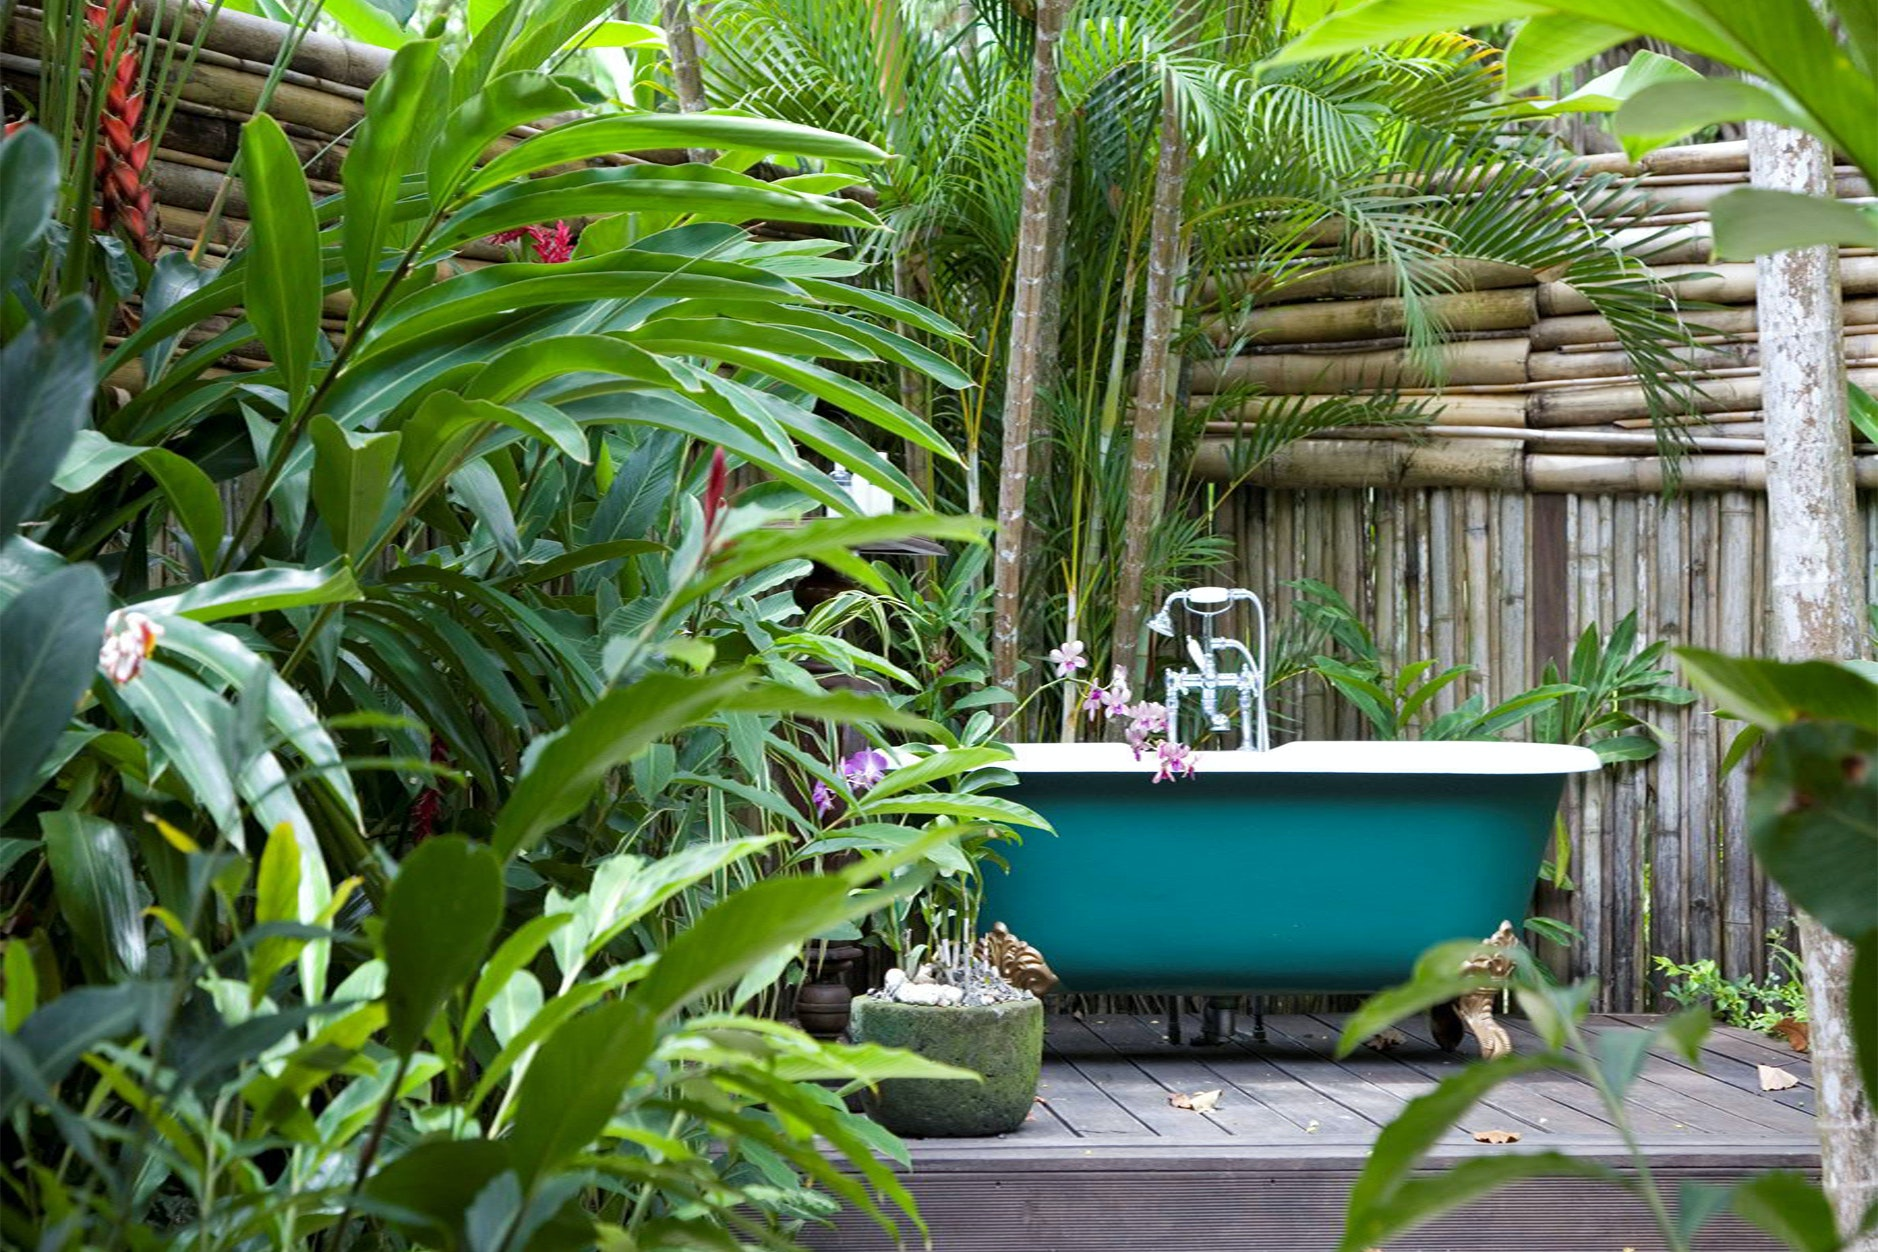 Get inspired by the James Bond vibes in the tub at GoldenEye's Fleming Villa.